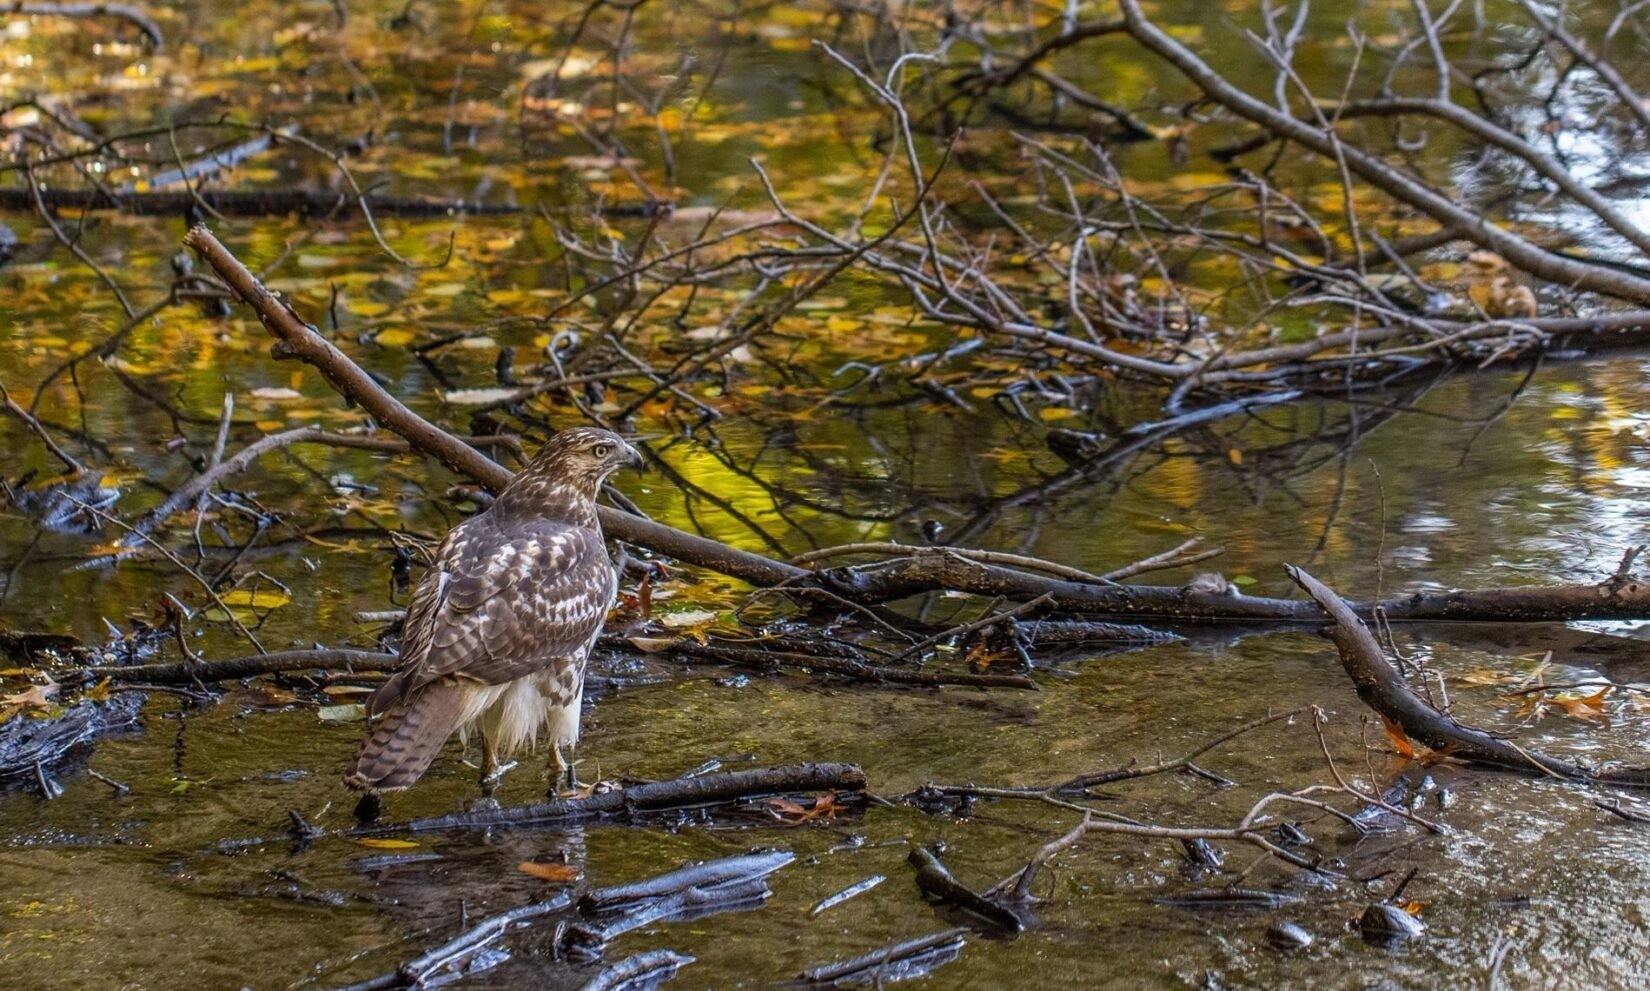 An alert hawk is perched on a branch midstream in the Gill.